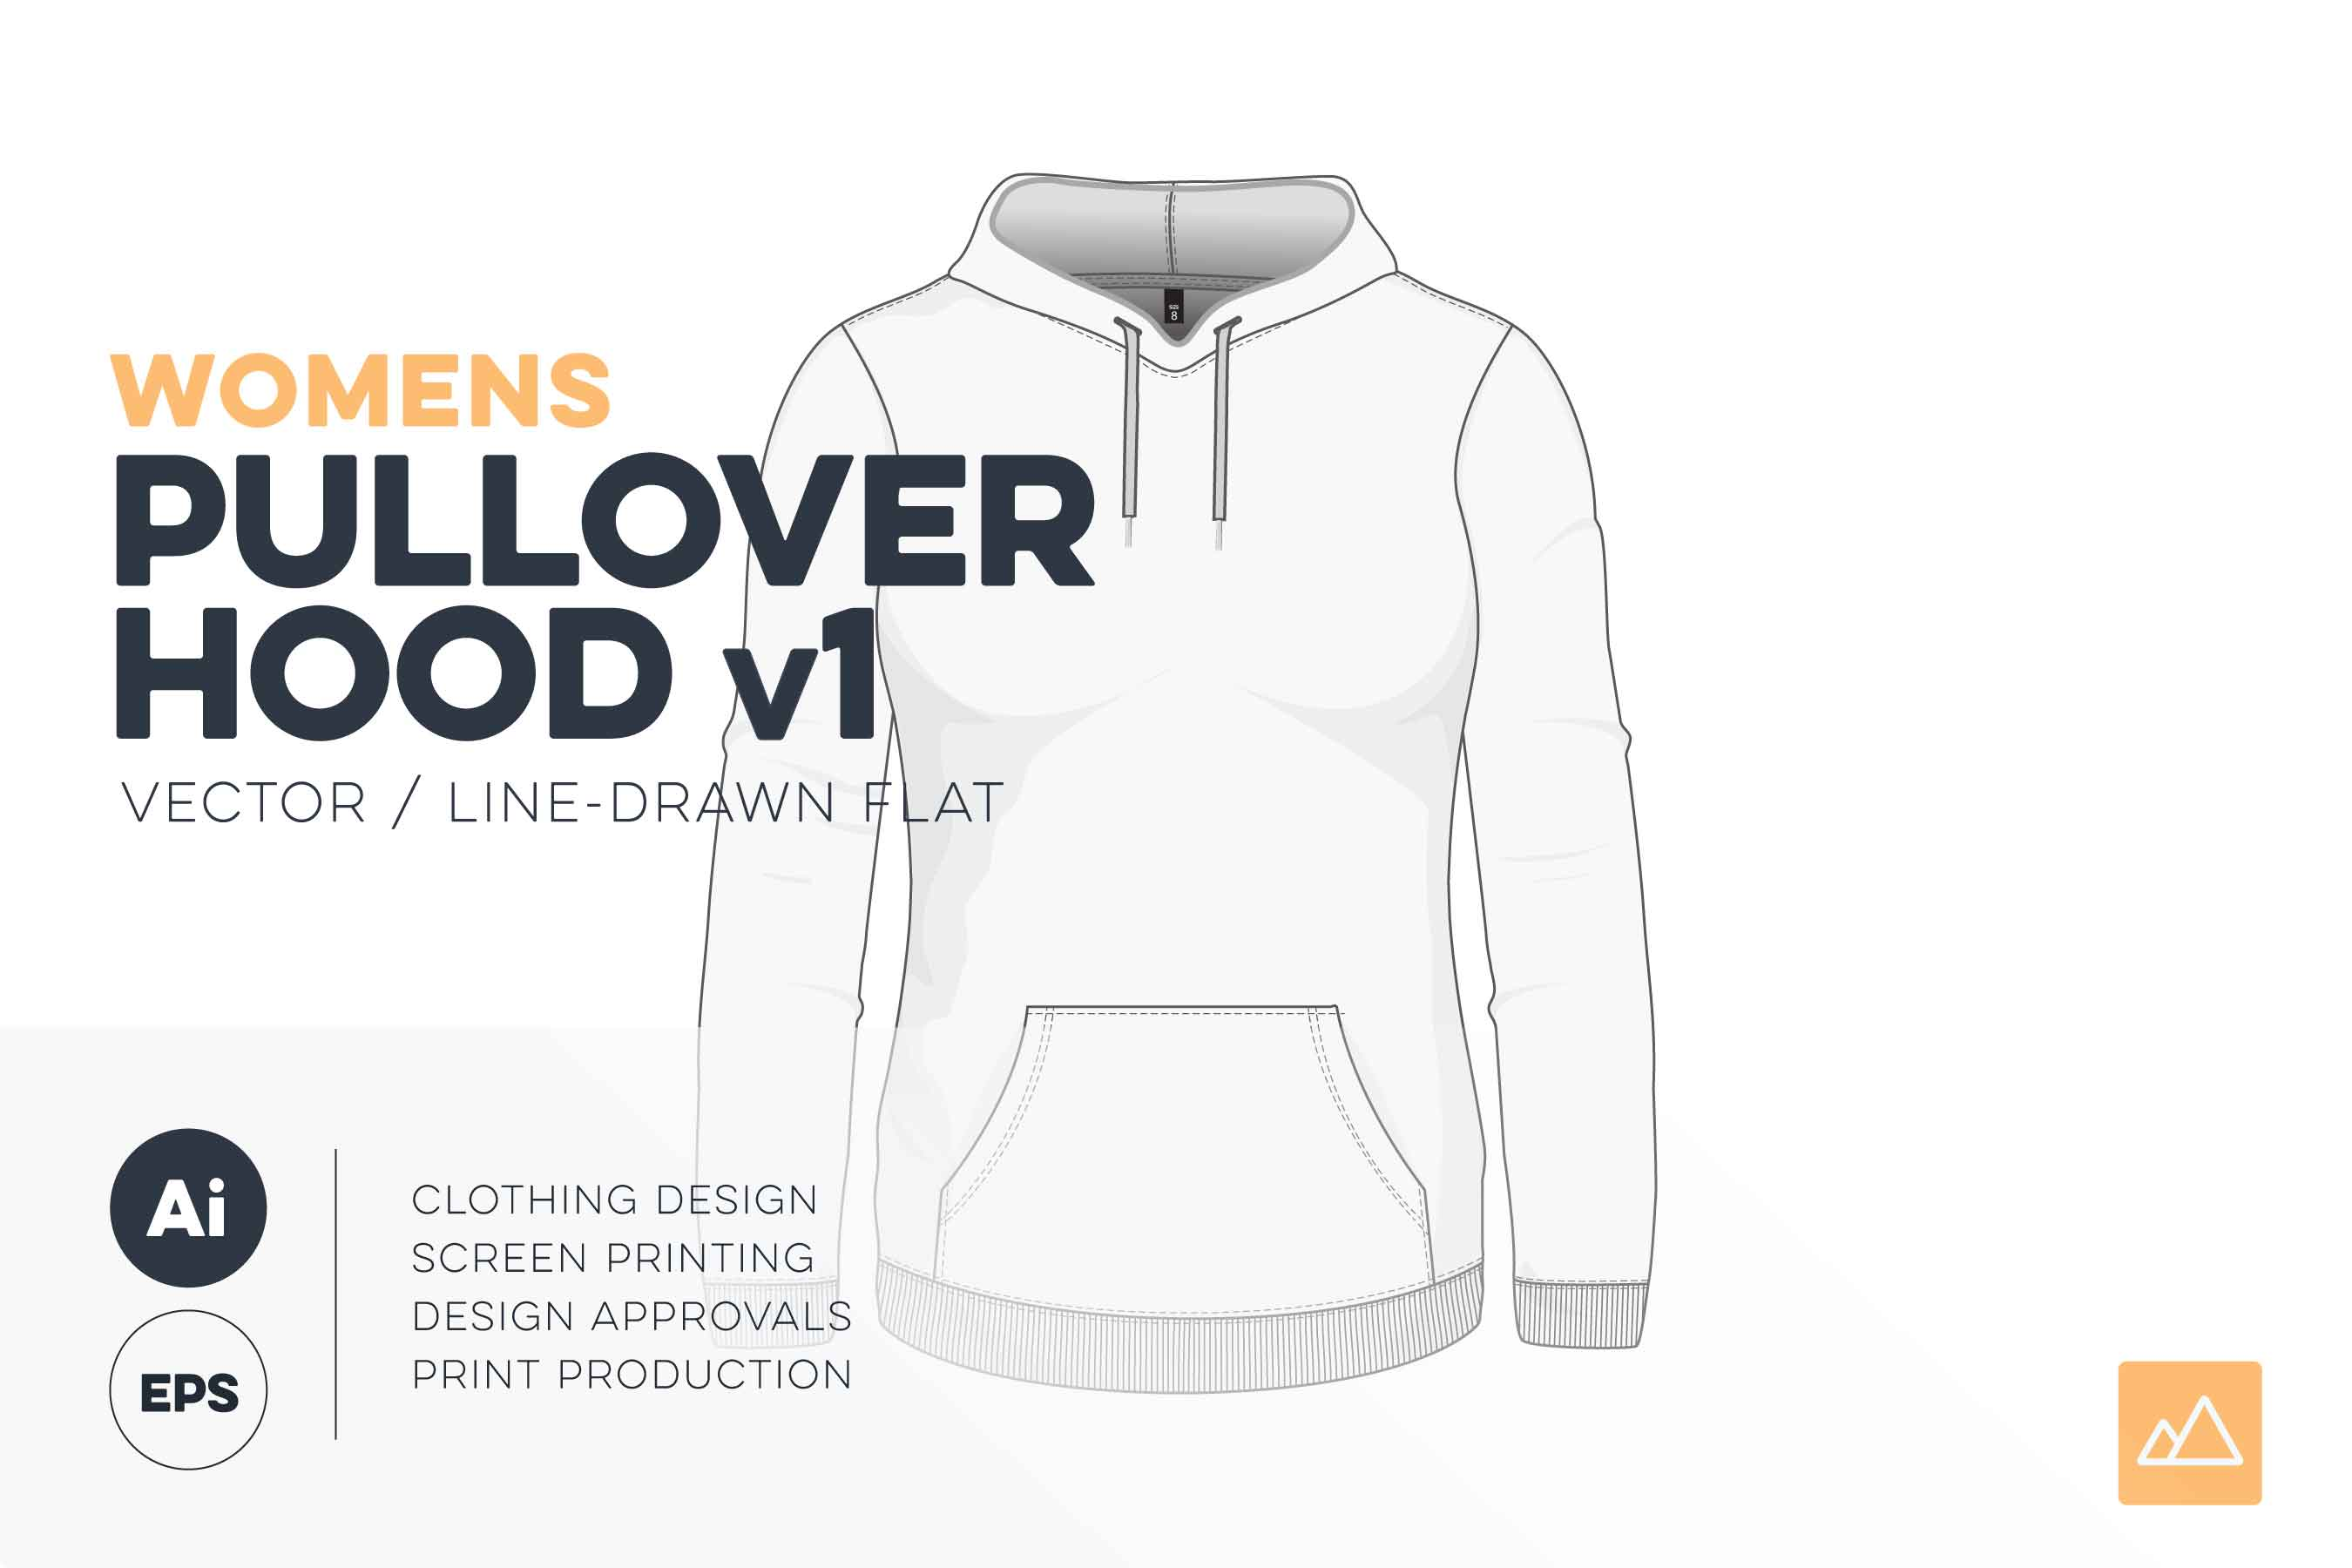 Womens pullover hoodie template vector pack HERO